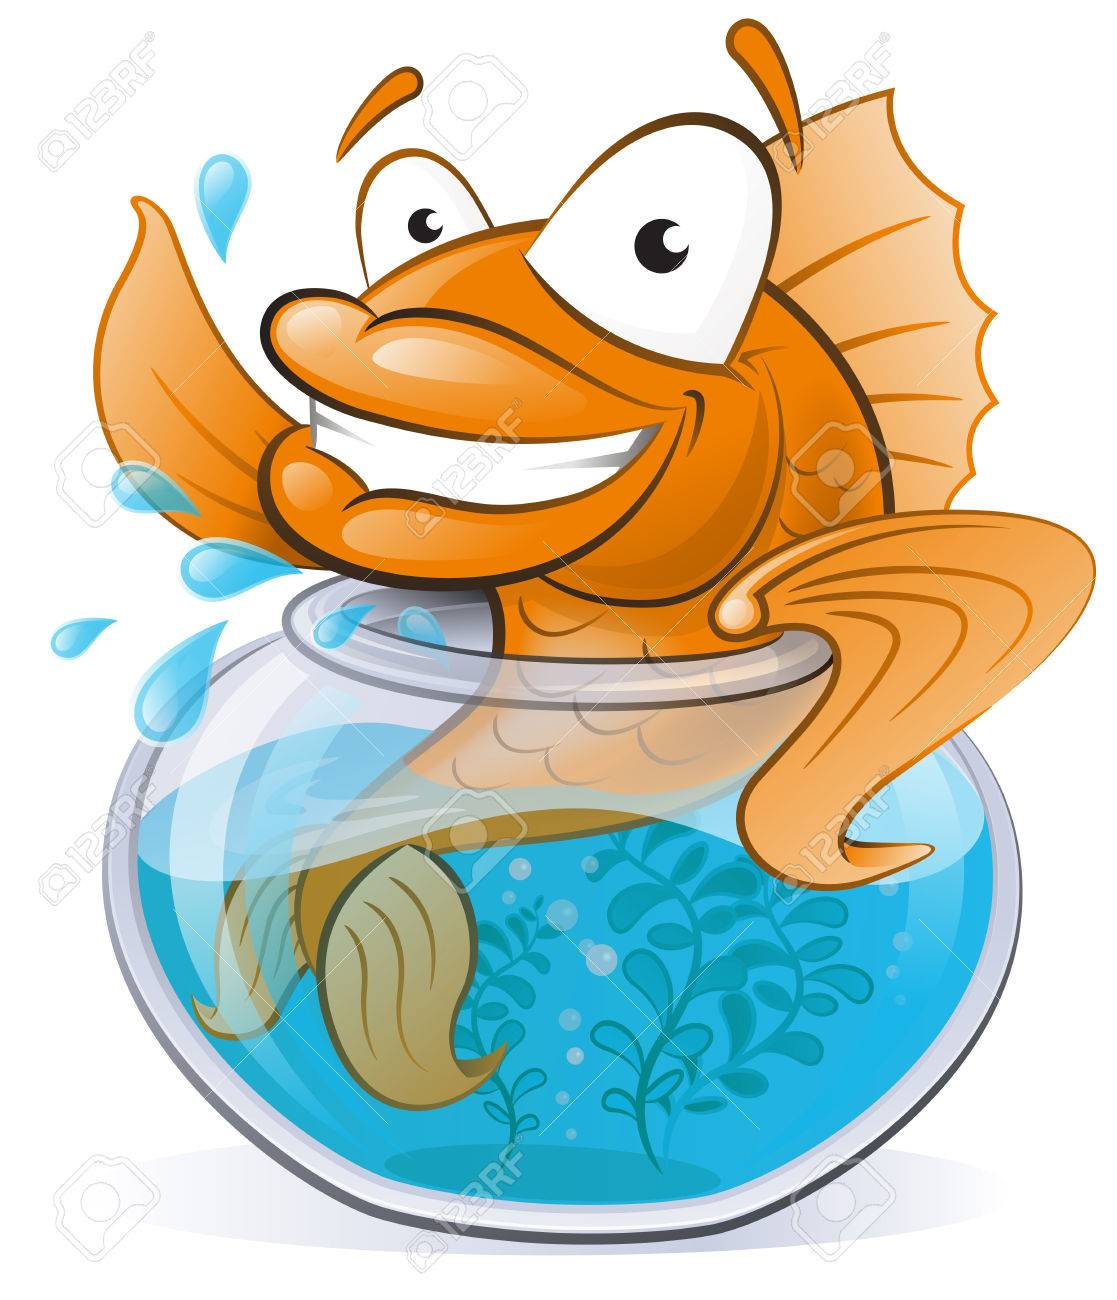 Cartoon goldfish illustration royalty free stock photo image - Great Illustration Of A Cute Cartoon Goldfish Waving From The Comfort Of His Goldfish Bowl